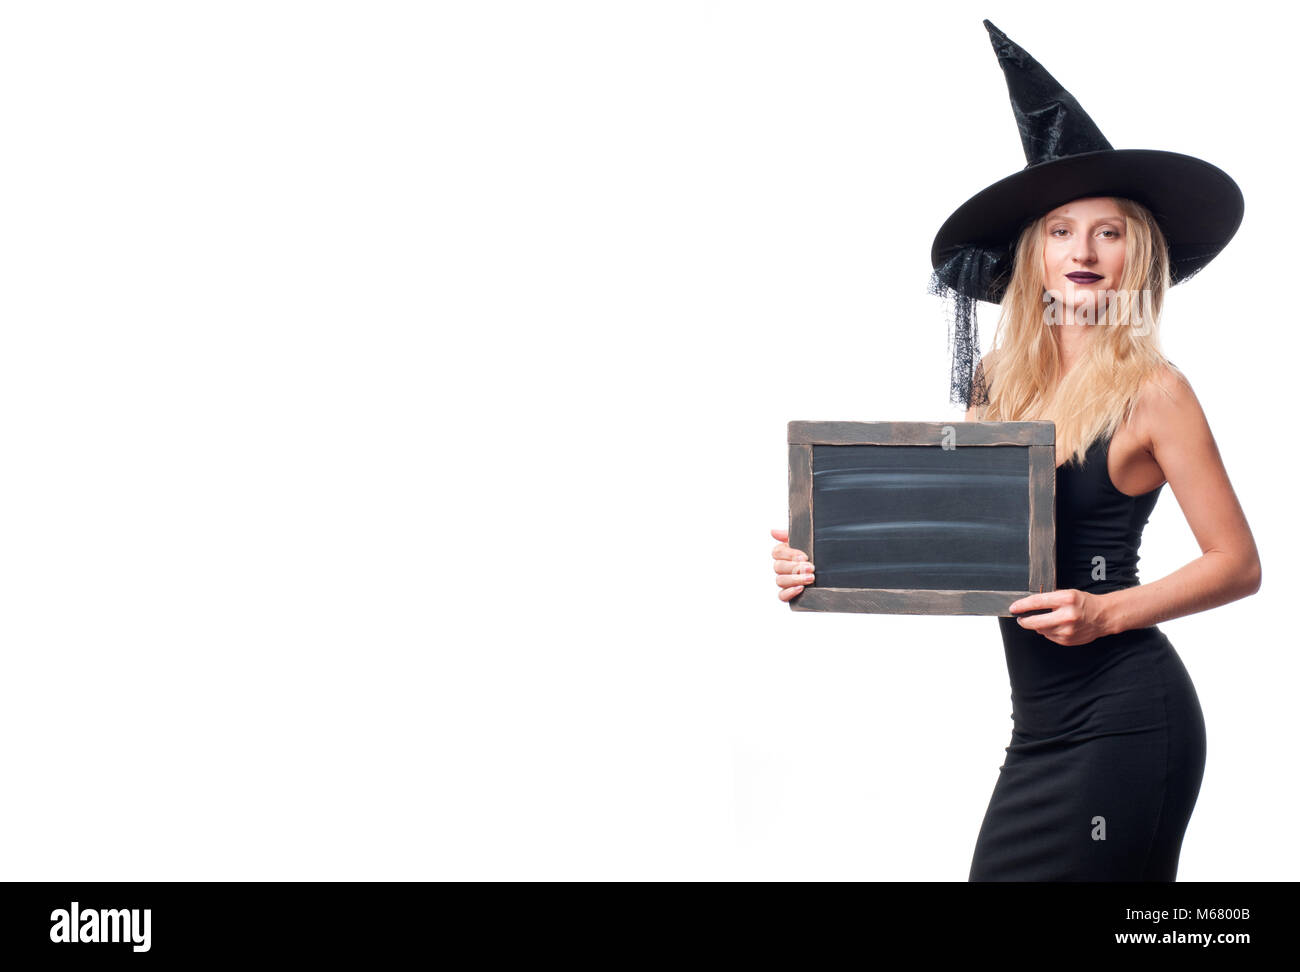 Happy woman in witch halloween costume with hat smiling on white background - Stock Image